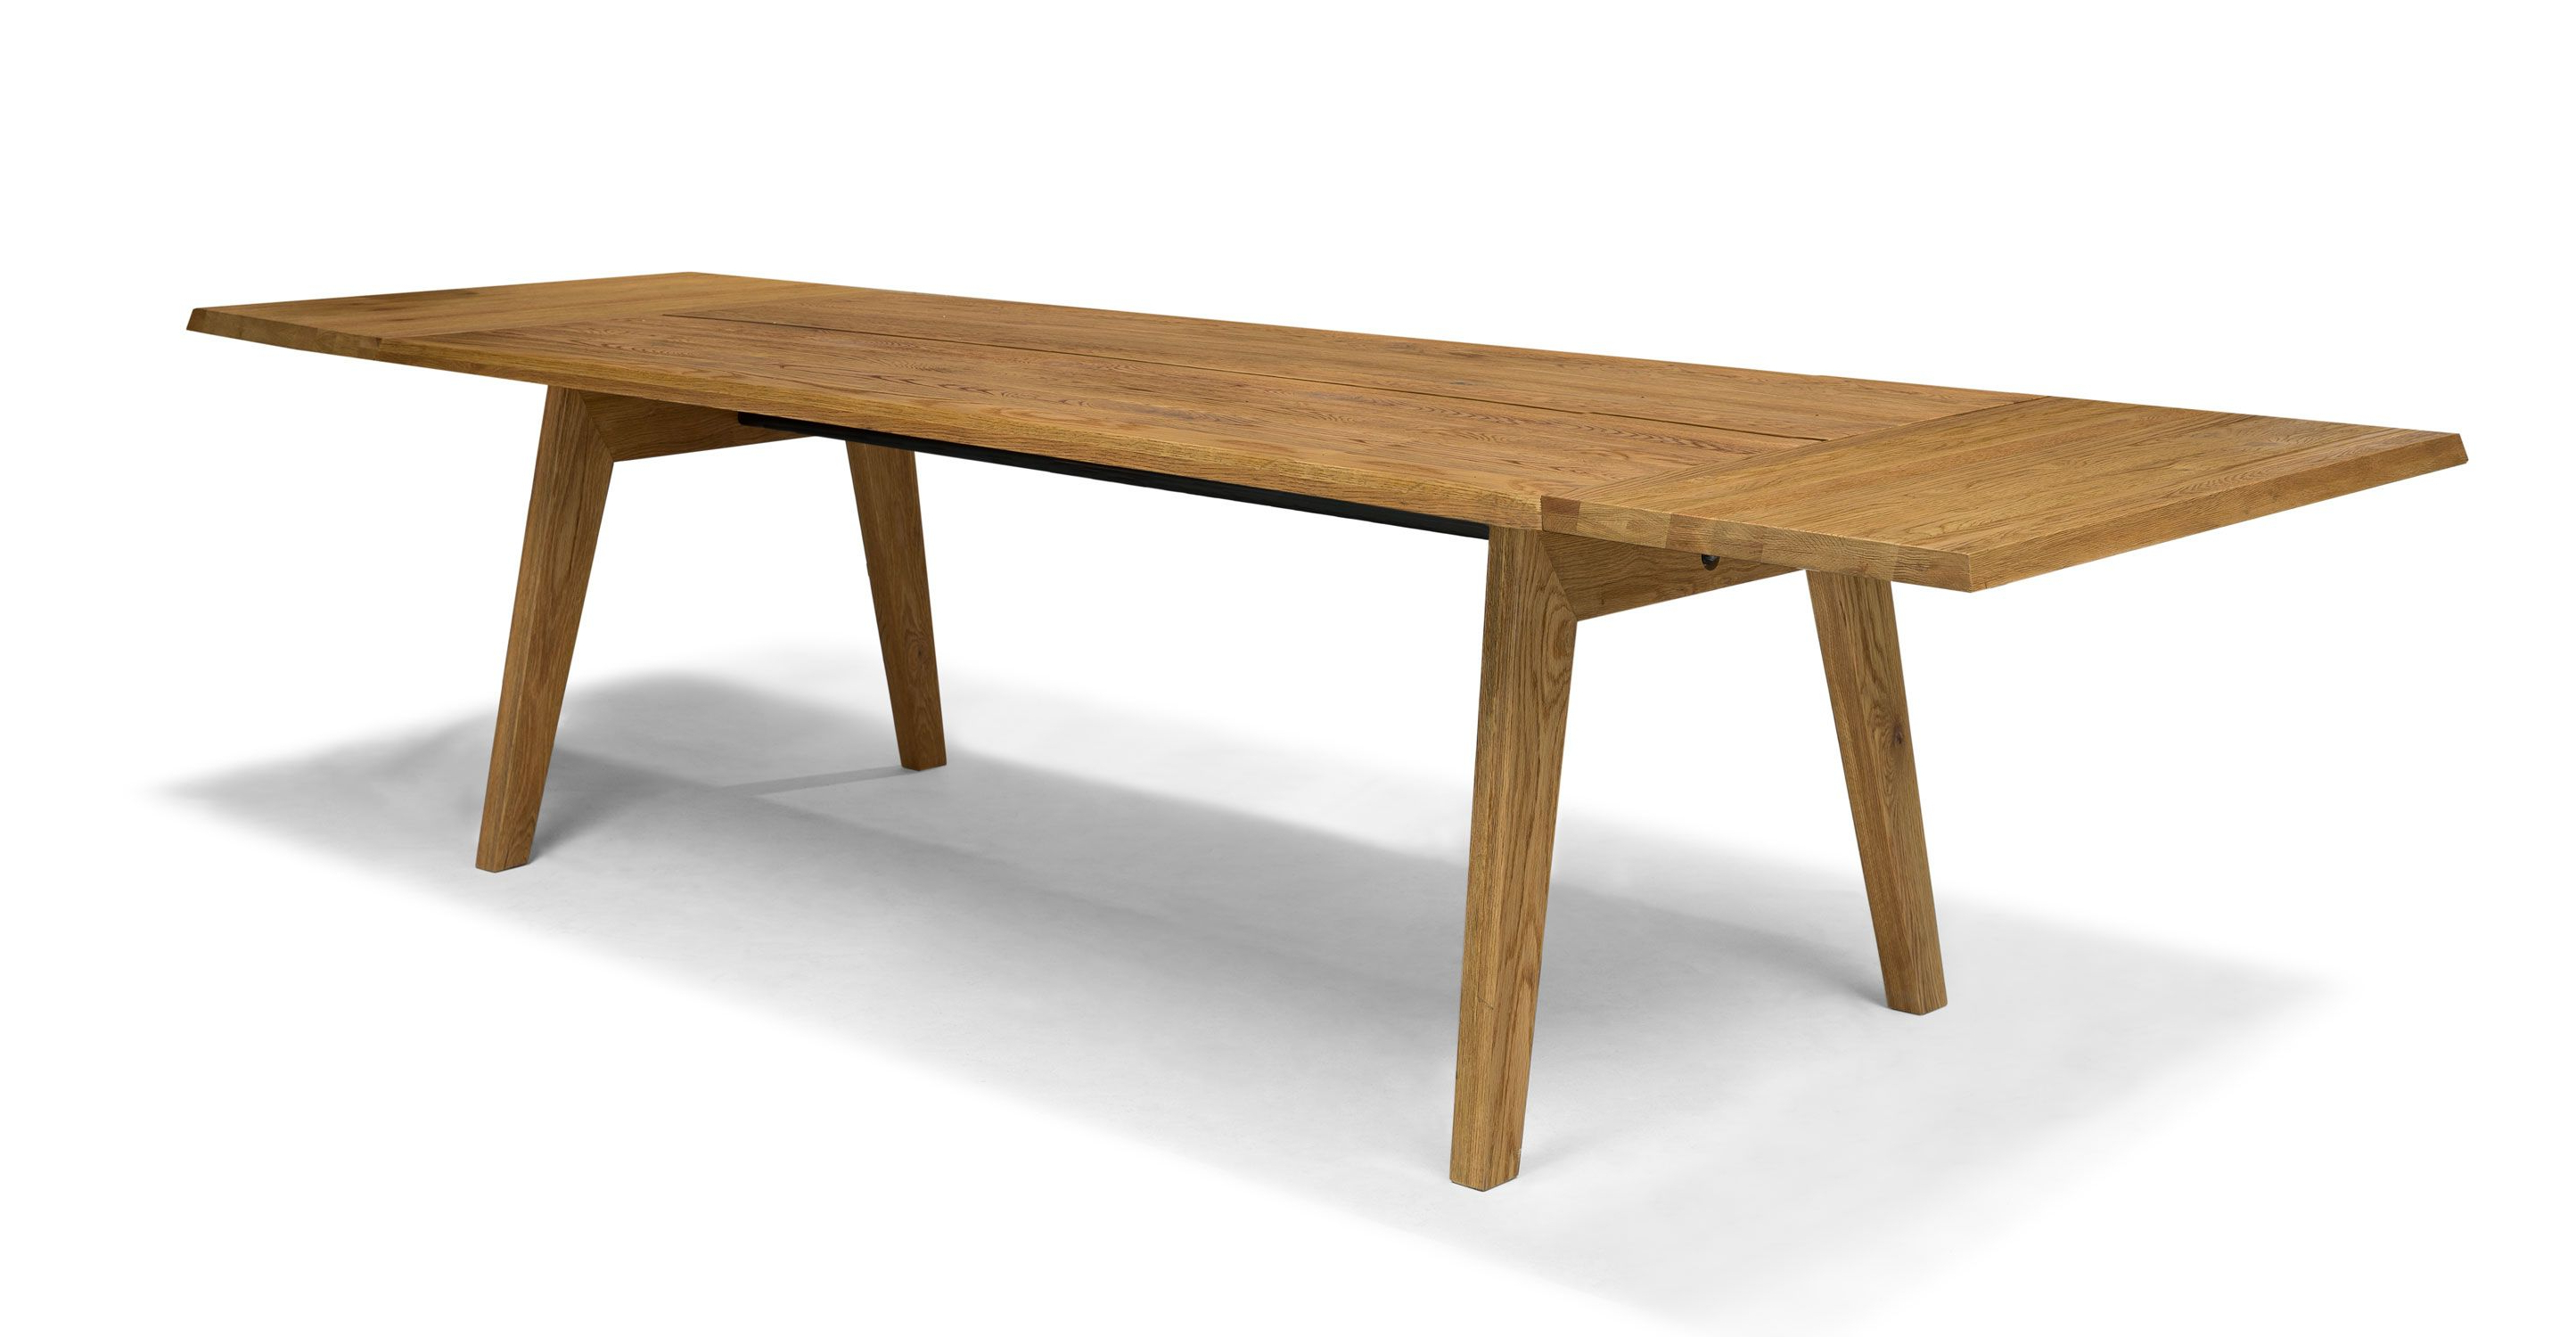 Handmade Mid Century Modern Dining Table, Solid Oak, Tapered With Regard To Most Up To Date Solid Hardwood Rectangle Mid Century Modern Coffee Tables (View 19 of 20)